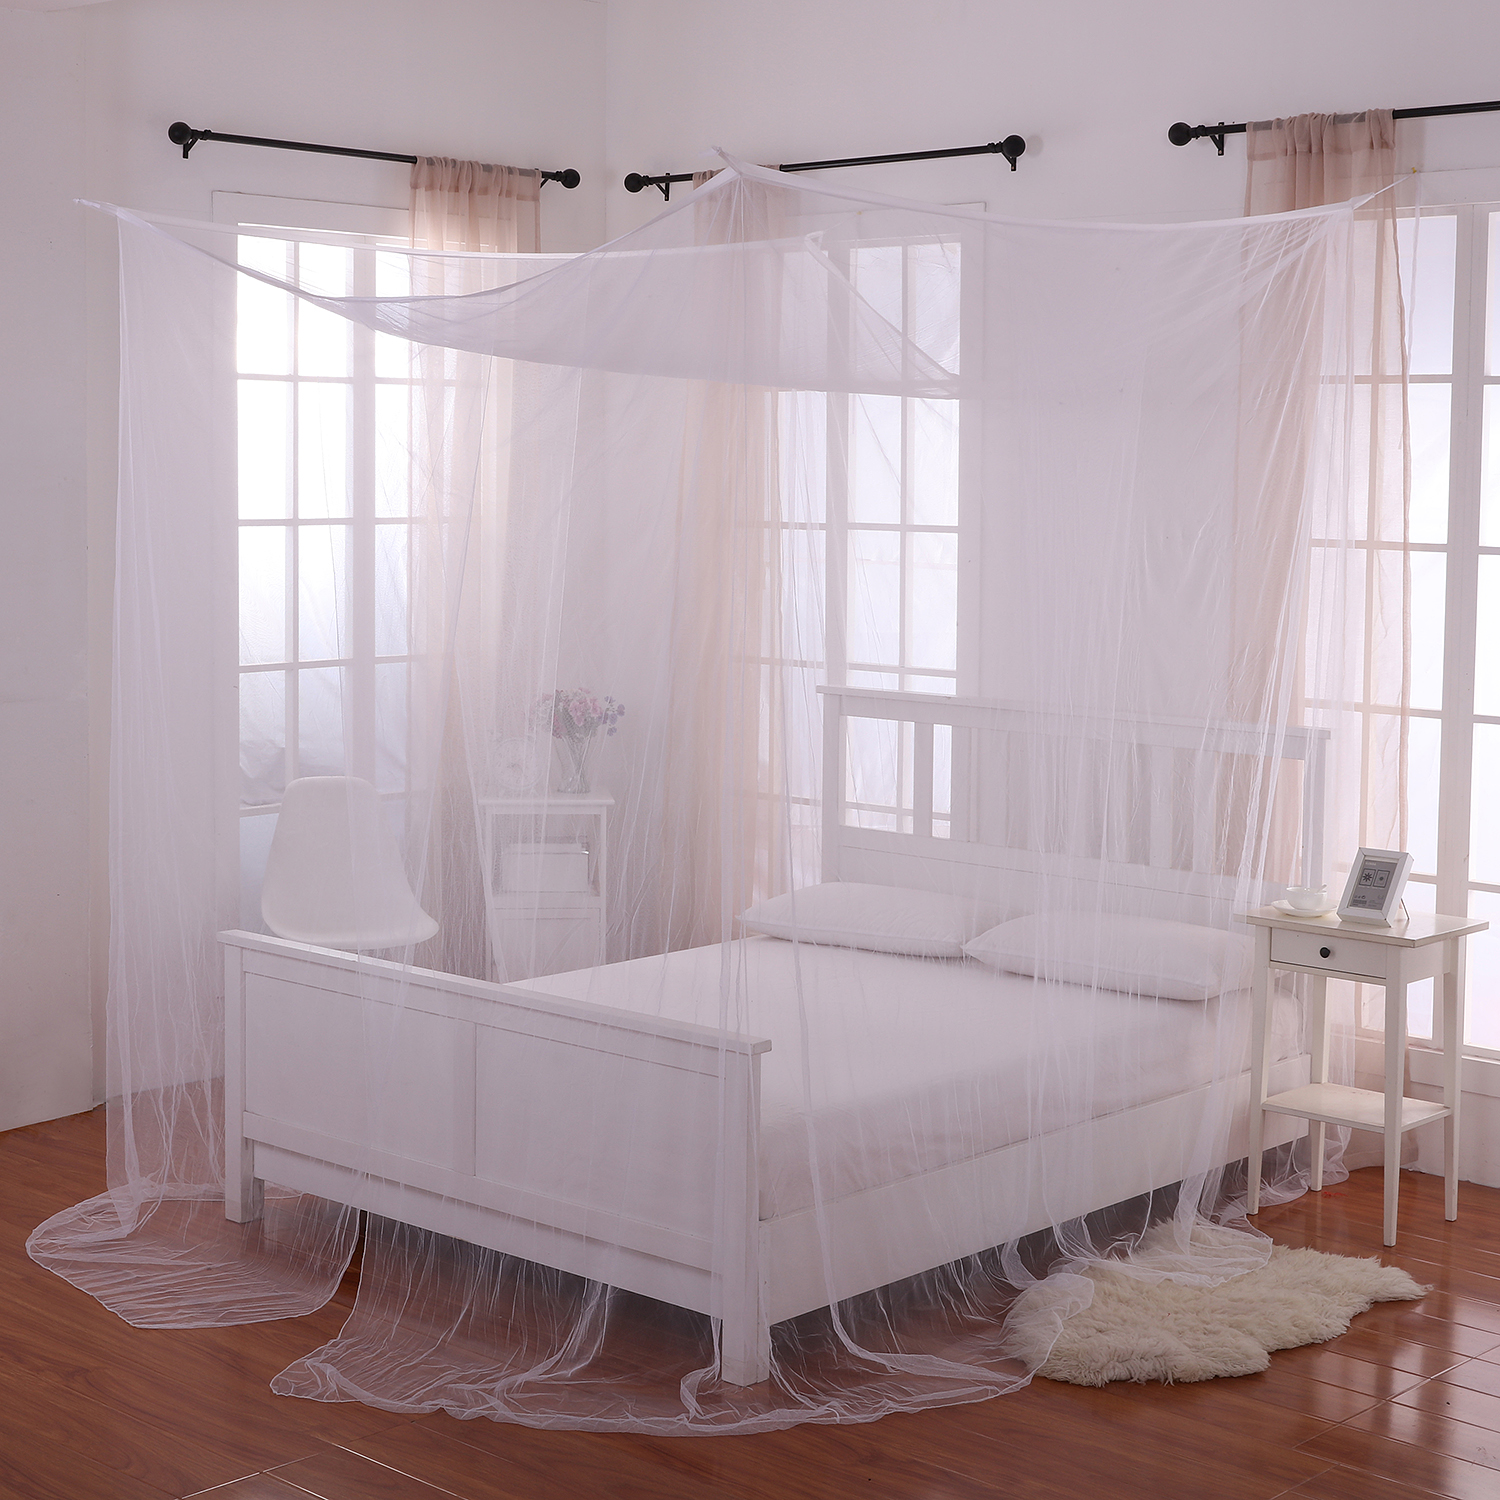 Palace 4-Post Bed Sheer Panel Canopy & Palace 4-Post Bed Sheer Panel Canopy - Walmart.com